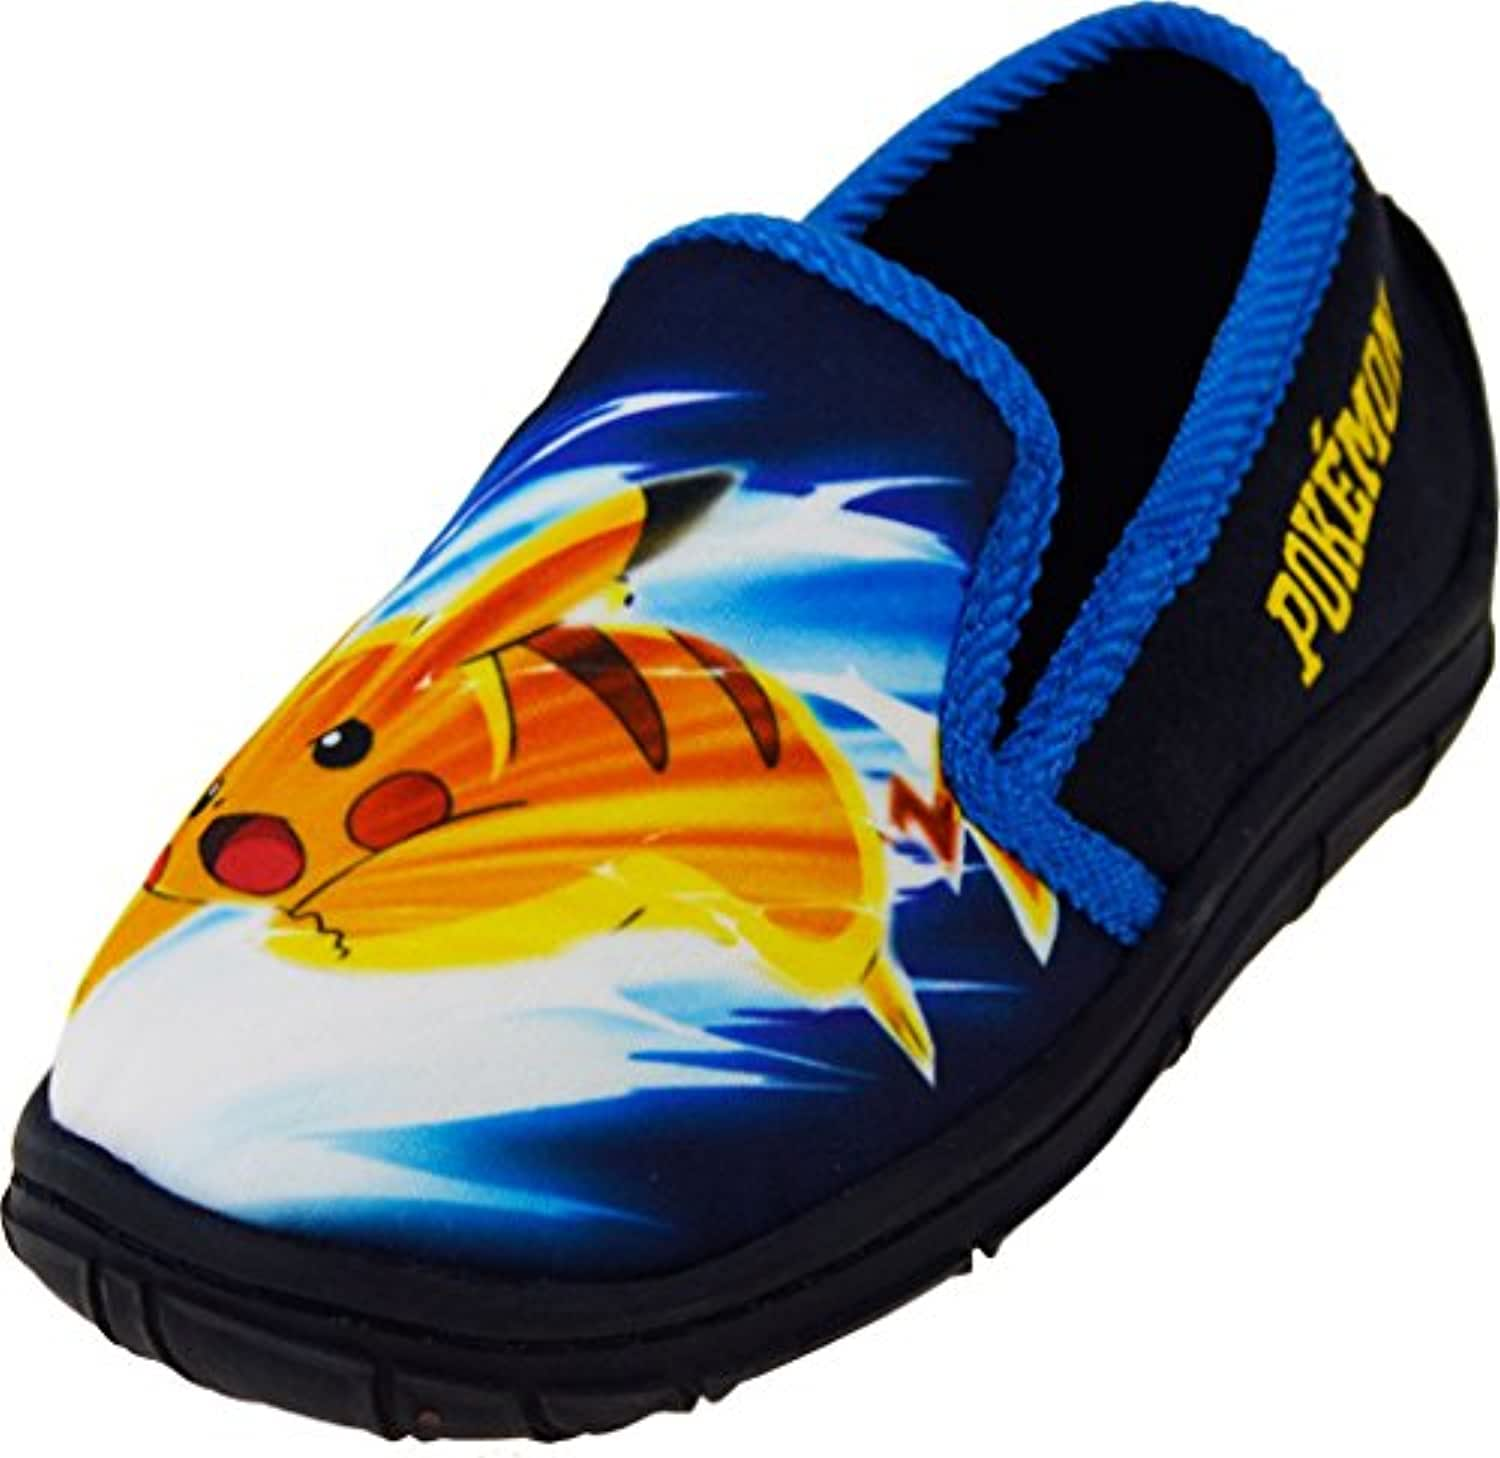 Boys - Pokemon Pikachu Slippers Novelty Character Footwear[10 Junior][Blue]